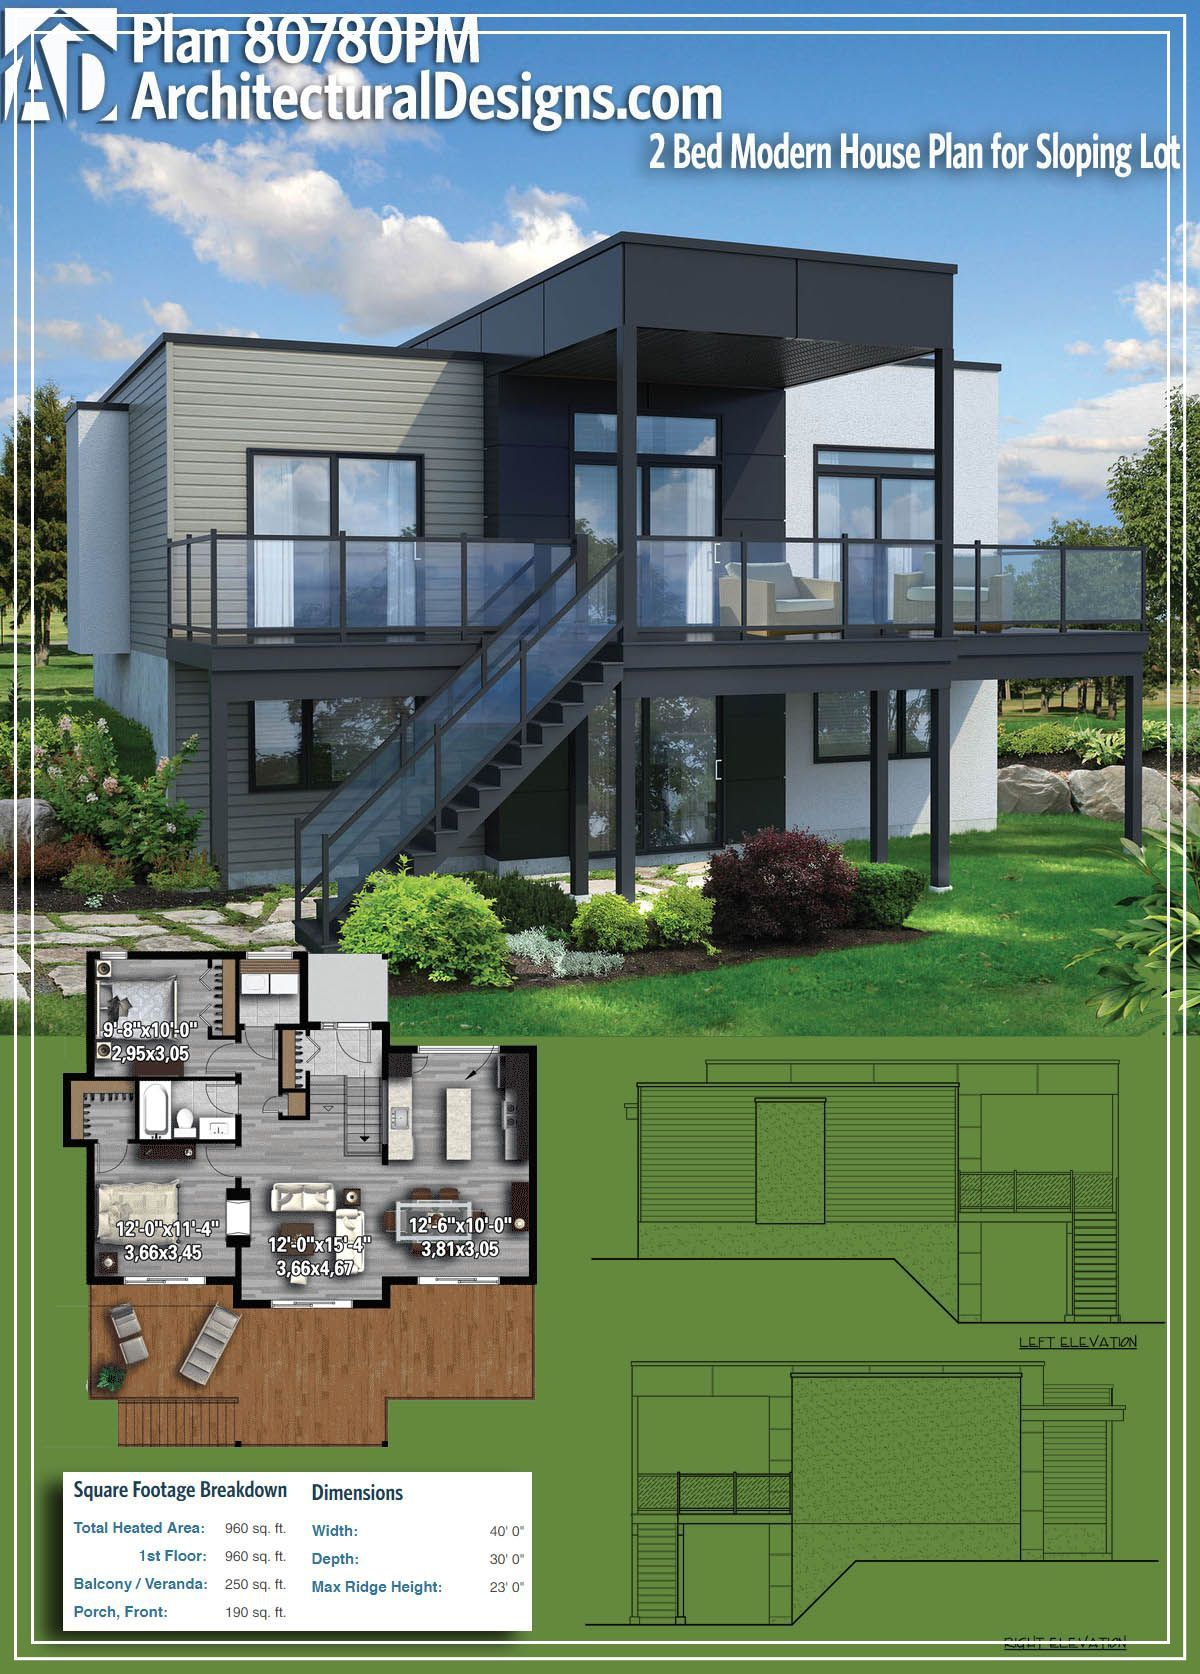 Https Upscaleexistence Blogspot Com Architectural Designs Modern House Plan 80780pm Gives You 2 Beds 1 Bat Modern House Plan House Plans Modern House Plans